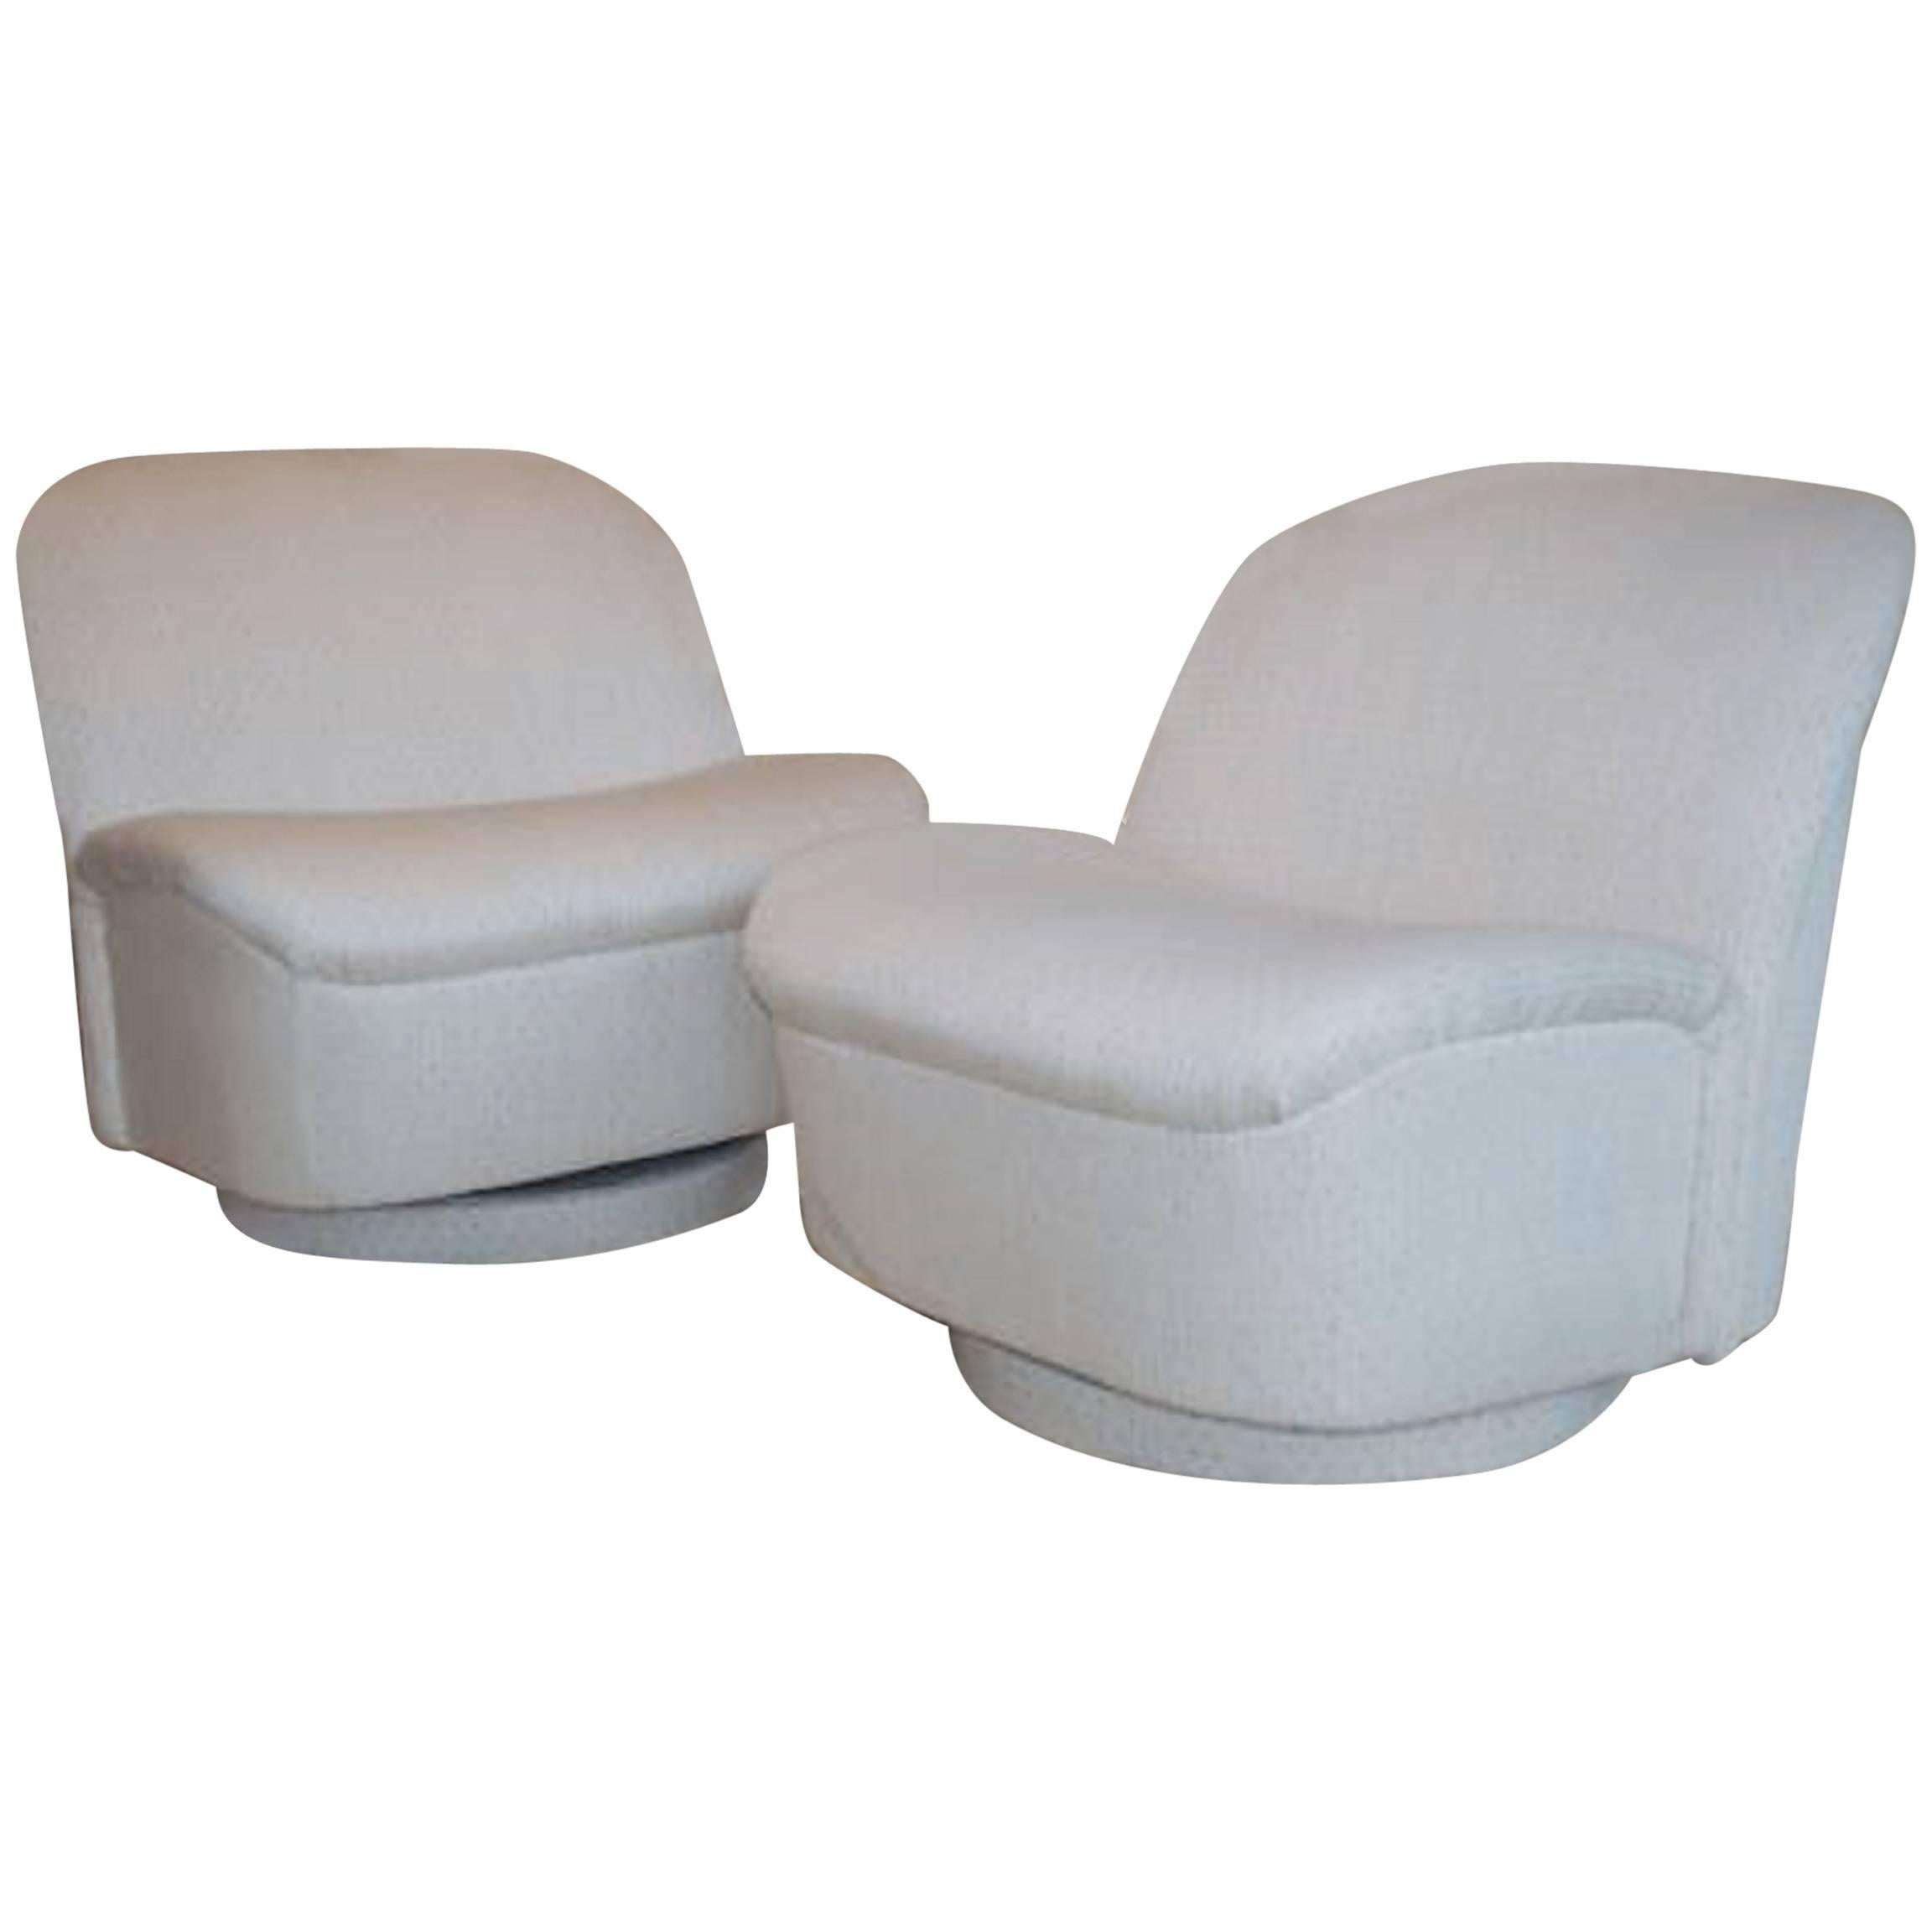 Pair of Vintage Swivel Chairs by Vladimir Kagan for Directional